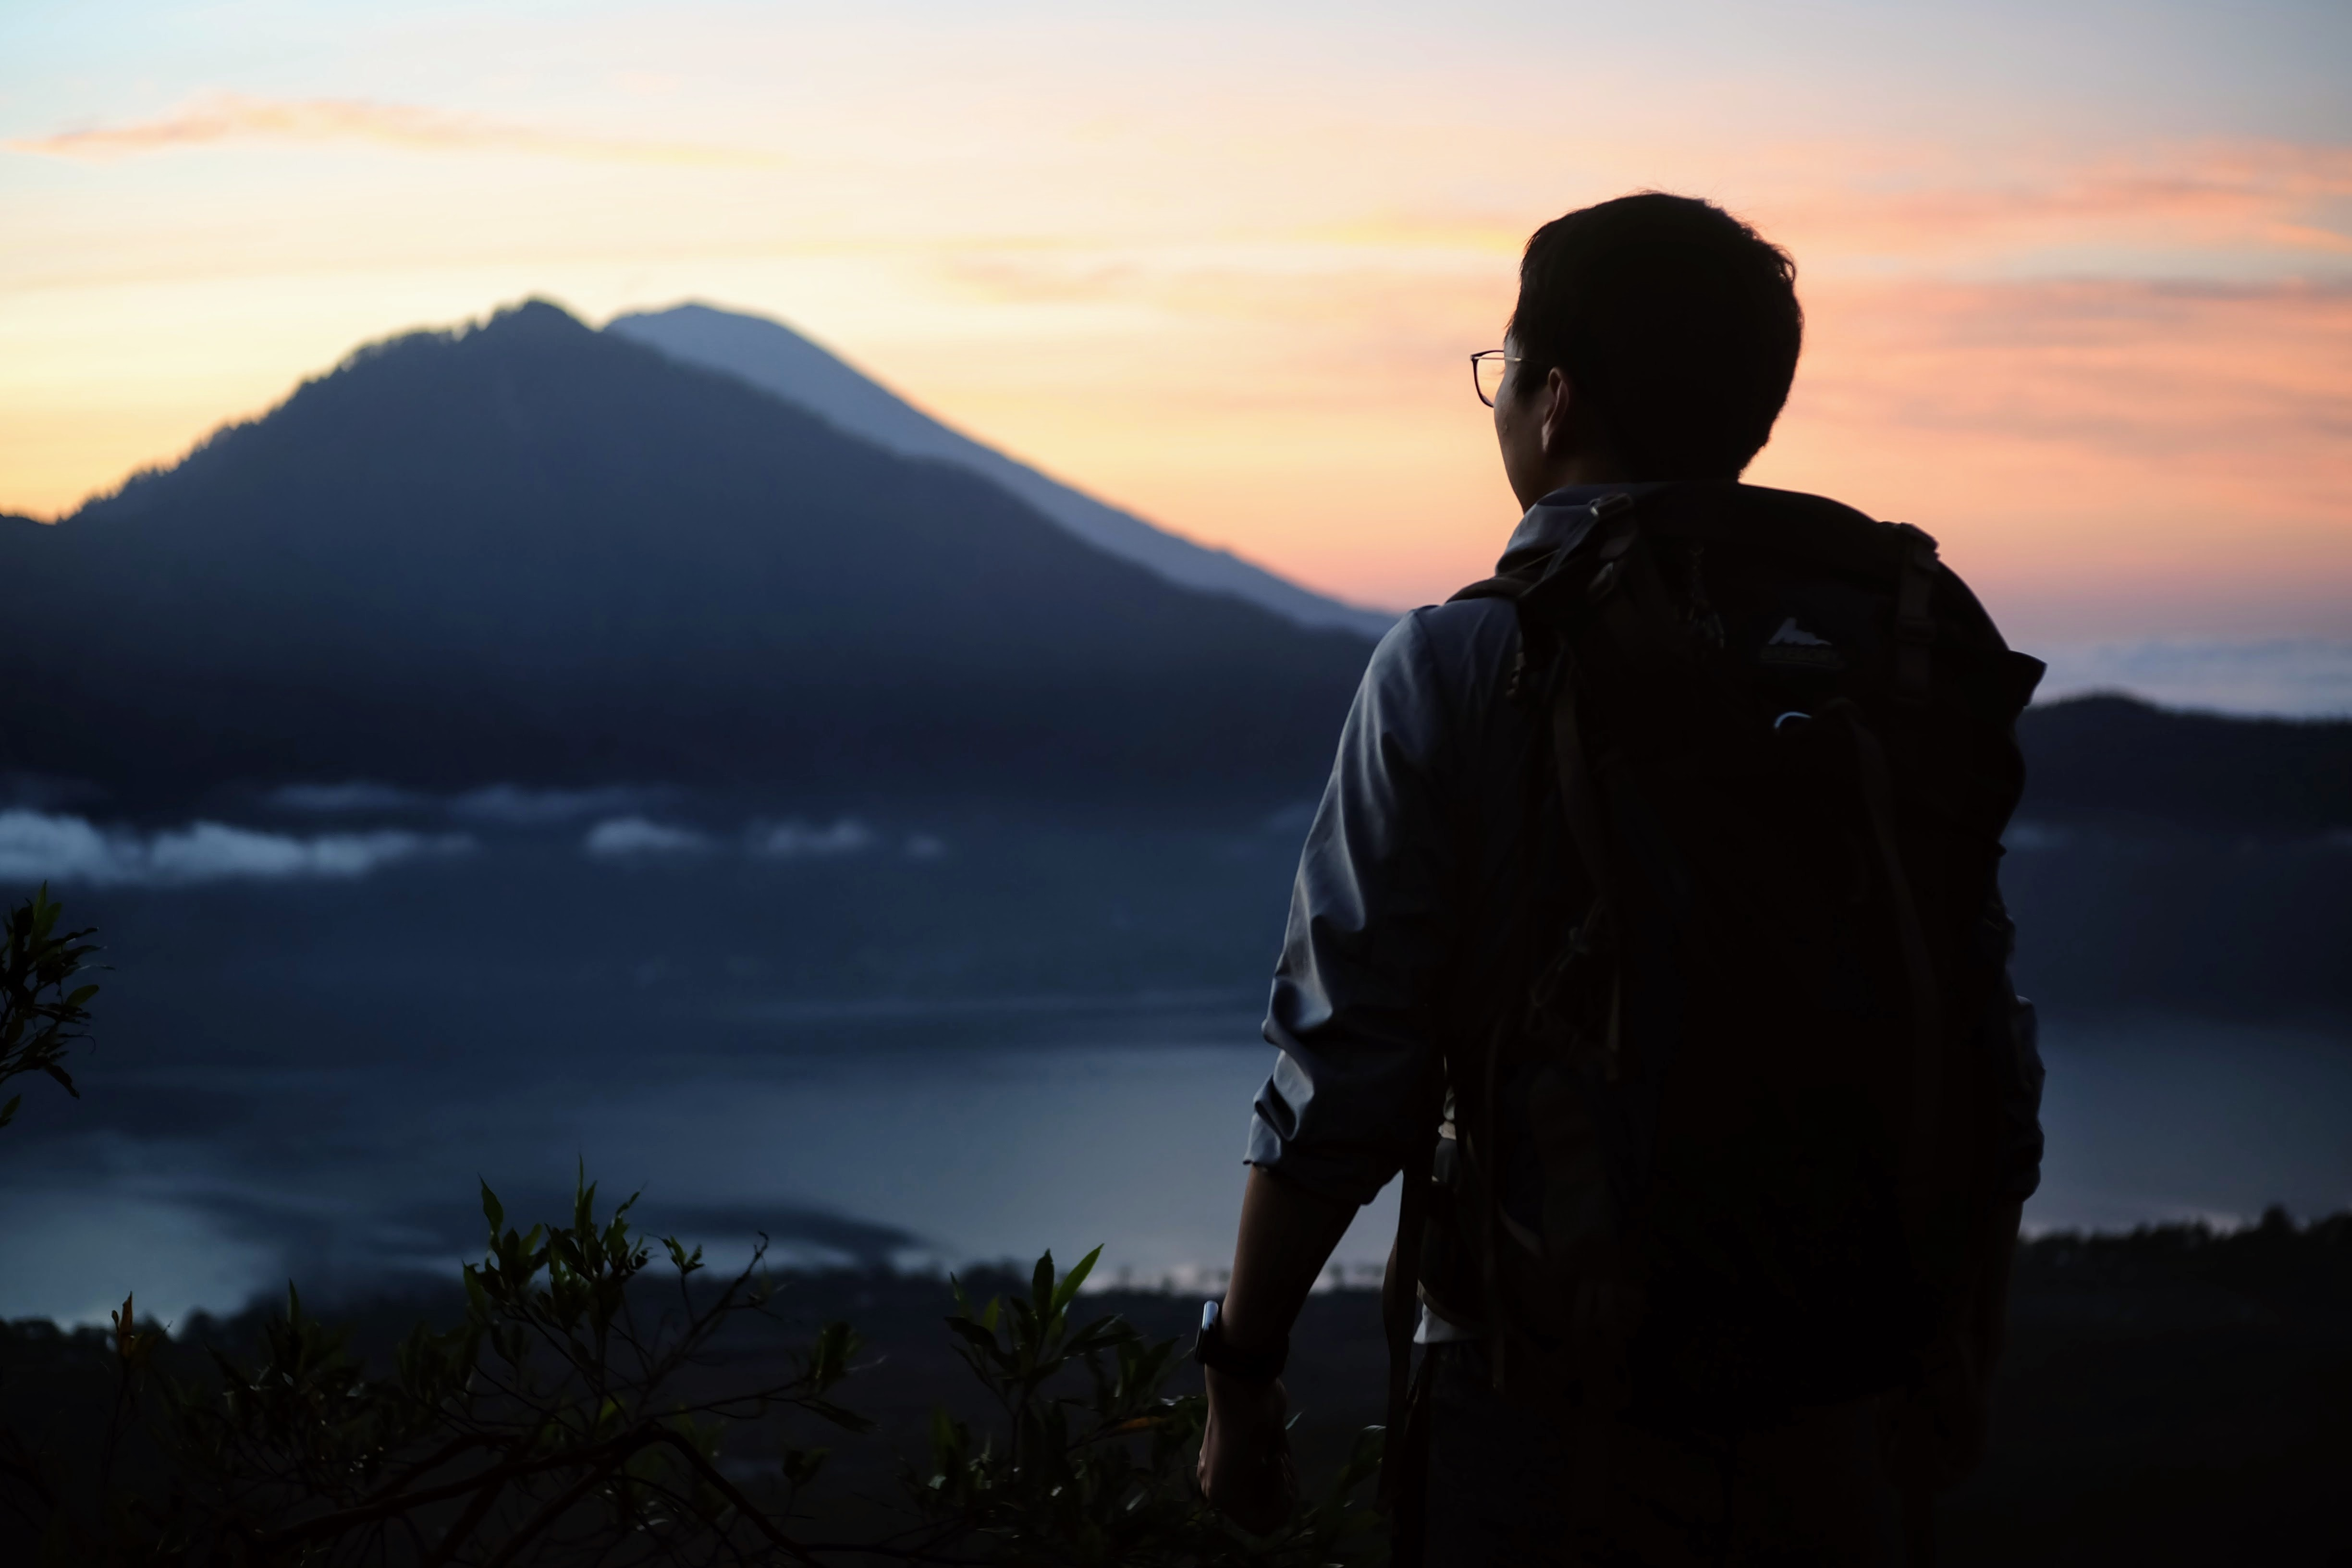 man wearing black backpack standing and watching mountain